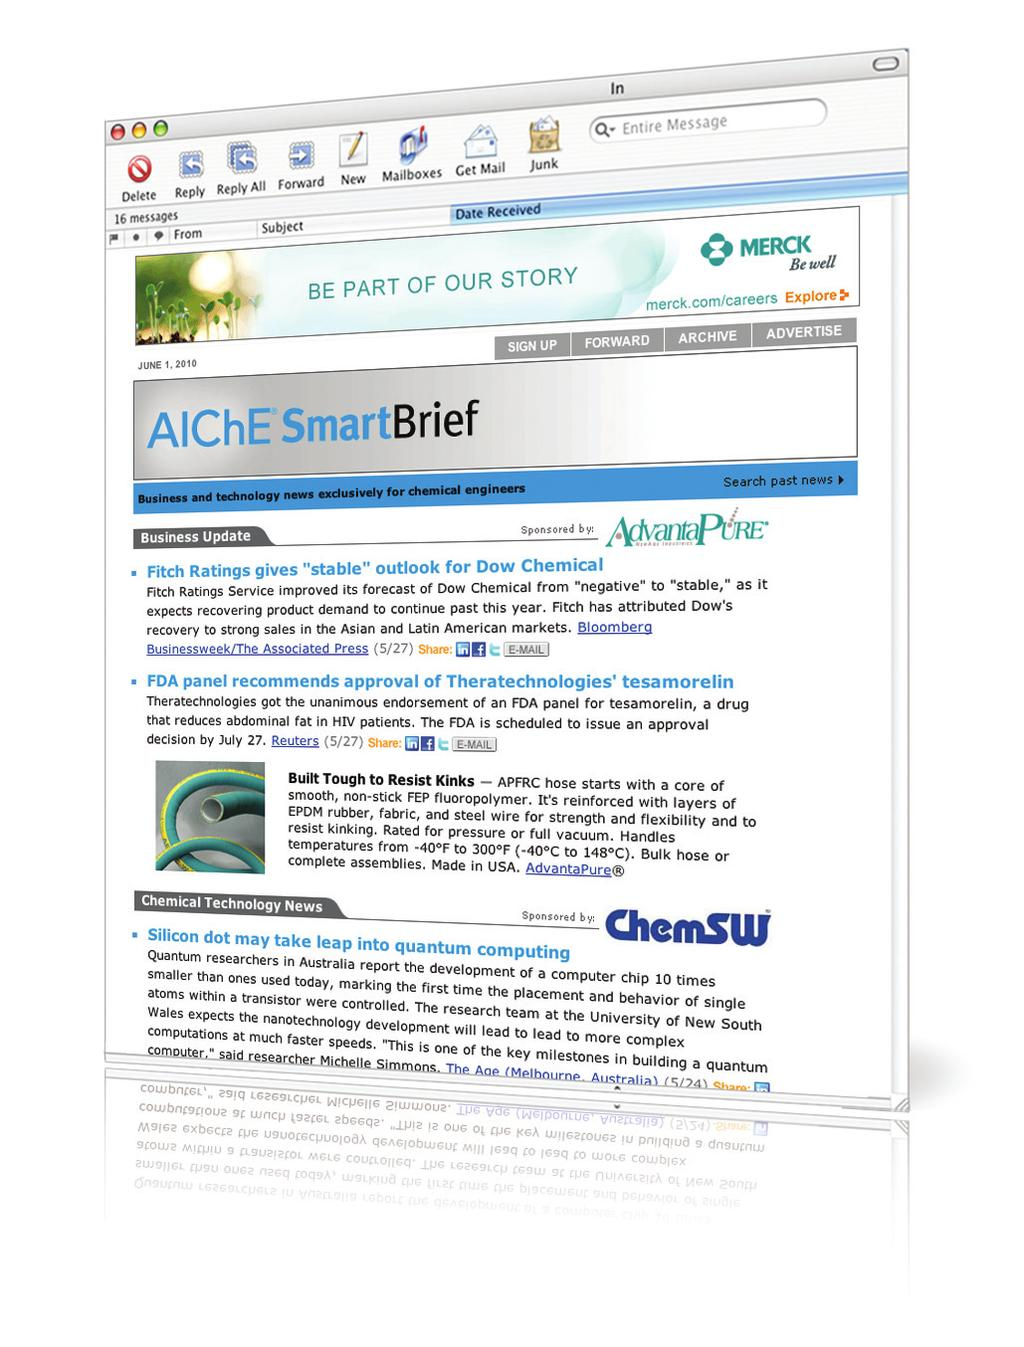 2010 Meda Kt 2010 Meda Kt Launched n the sprng of 2009, AIChE has quckly grown to become one of the most trusted news resources for chemcal engneerng professonals.